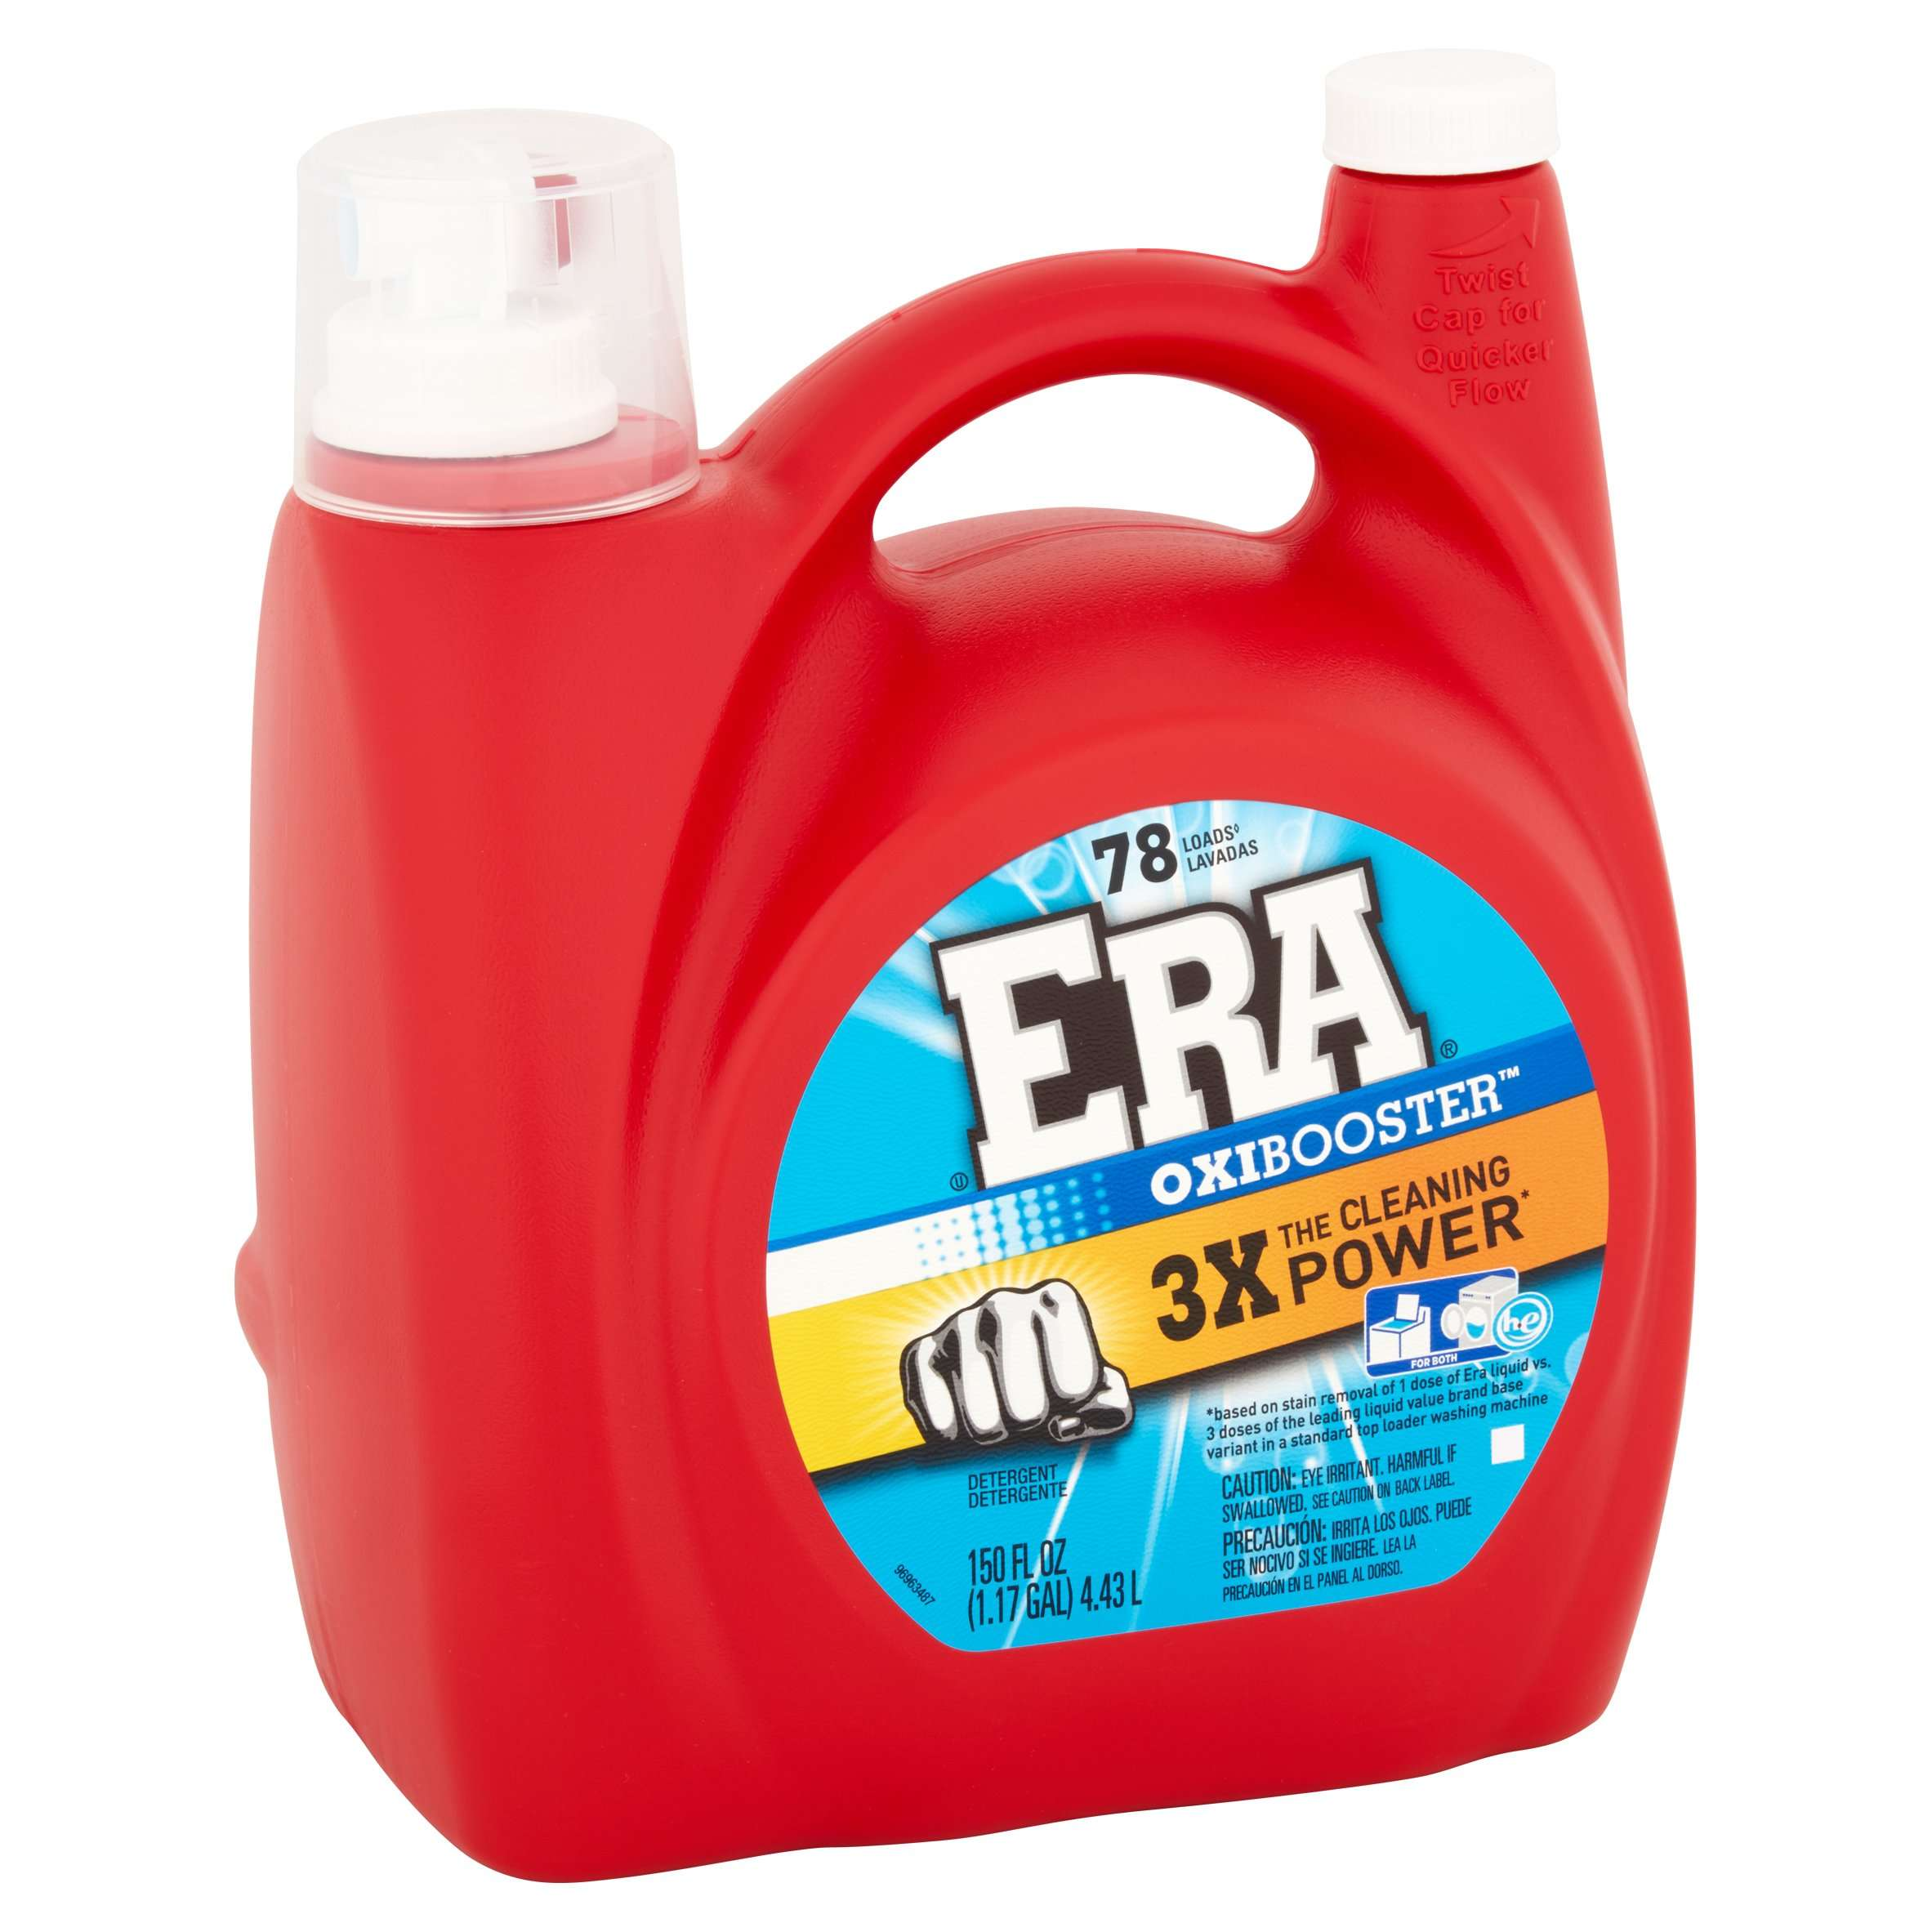 Era Oxibooster Liquid Laundry Detergent 78 Loads 150 Fl Oz